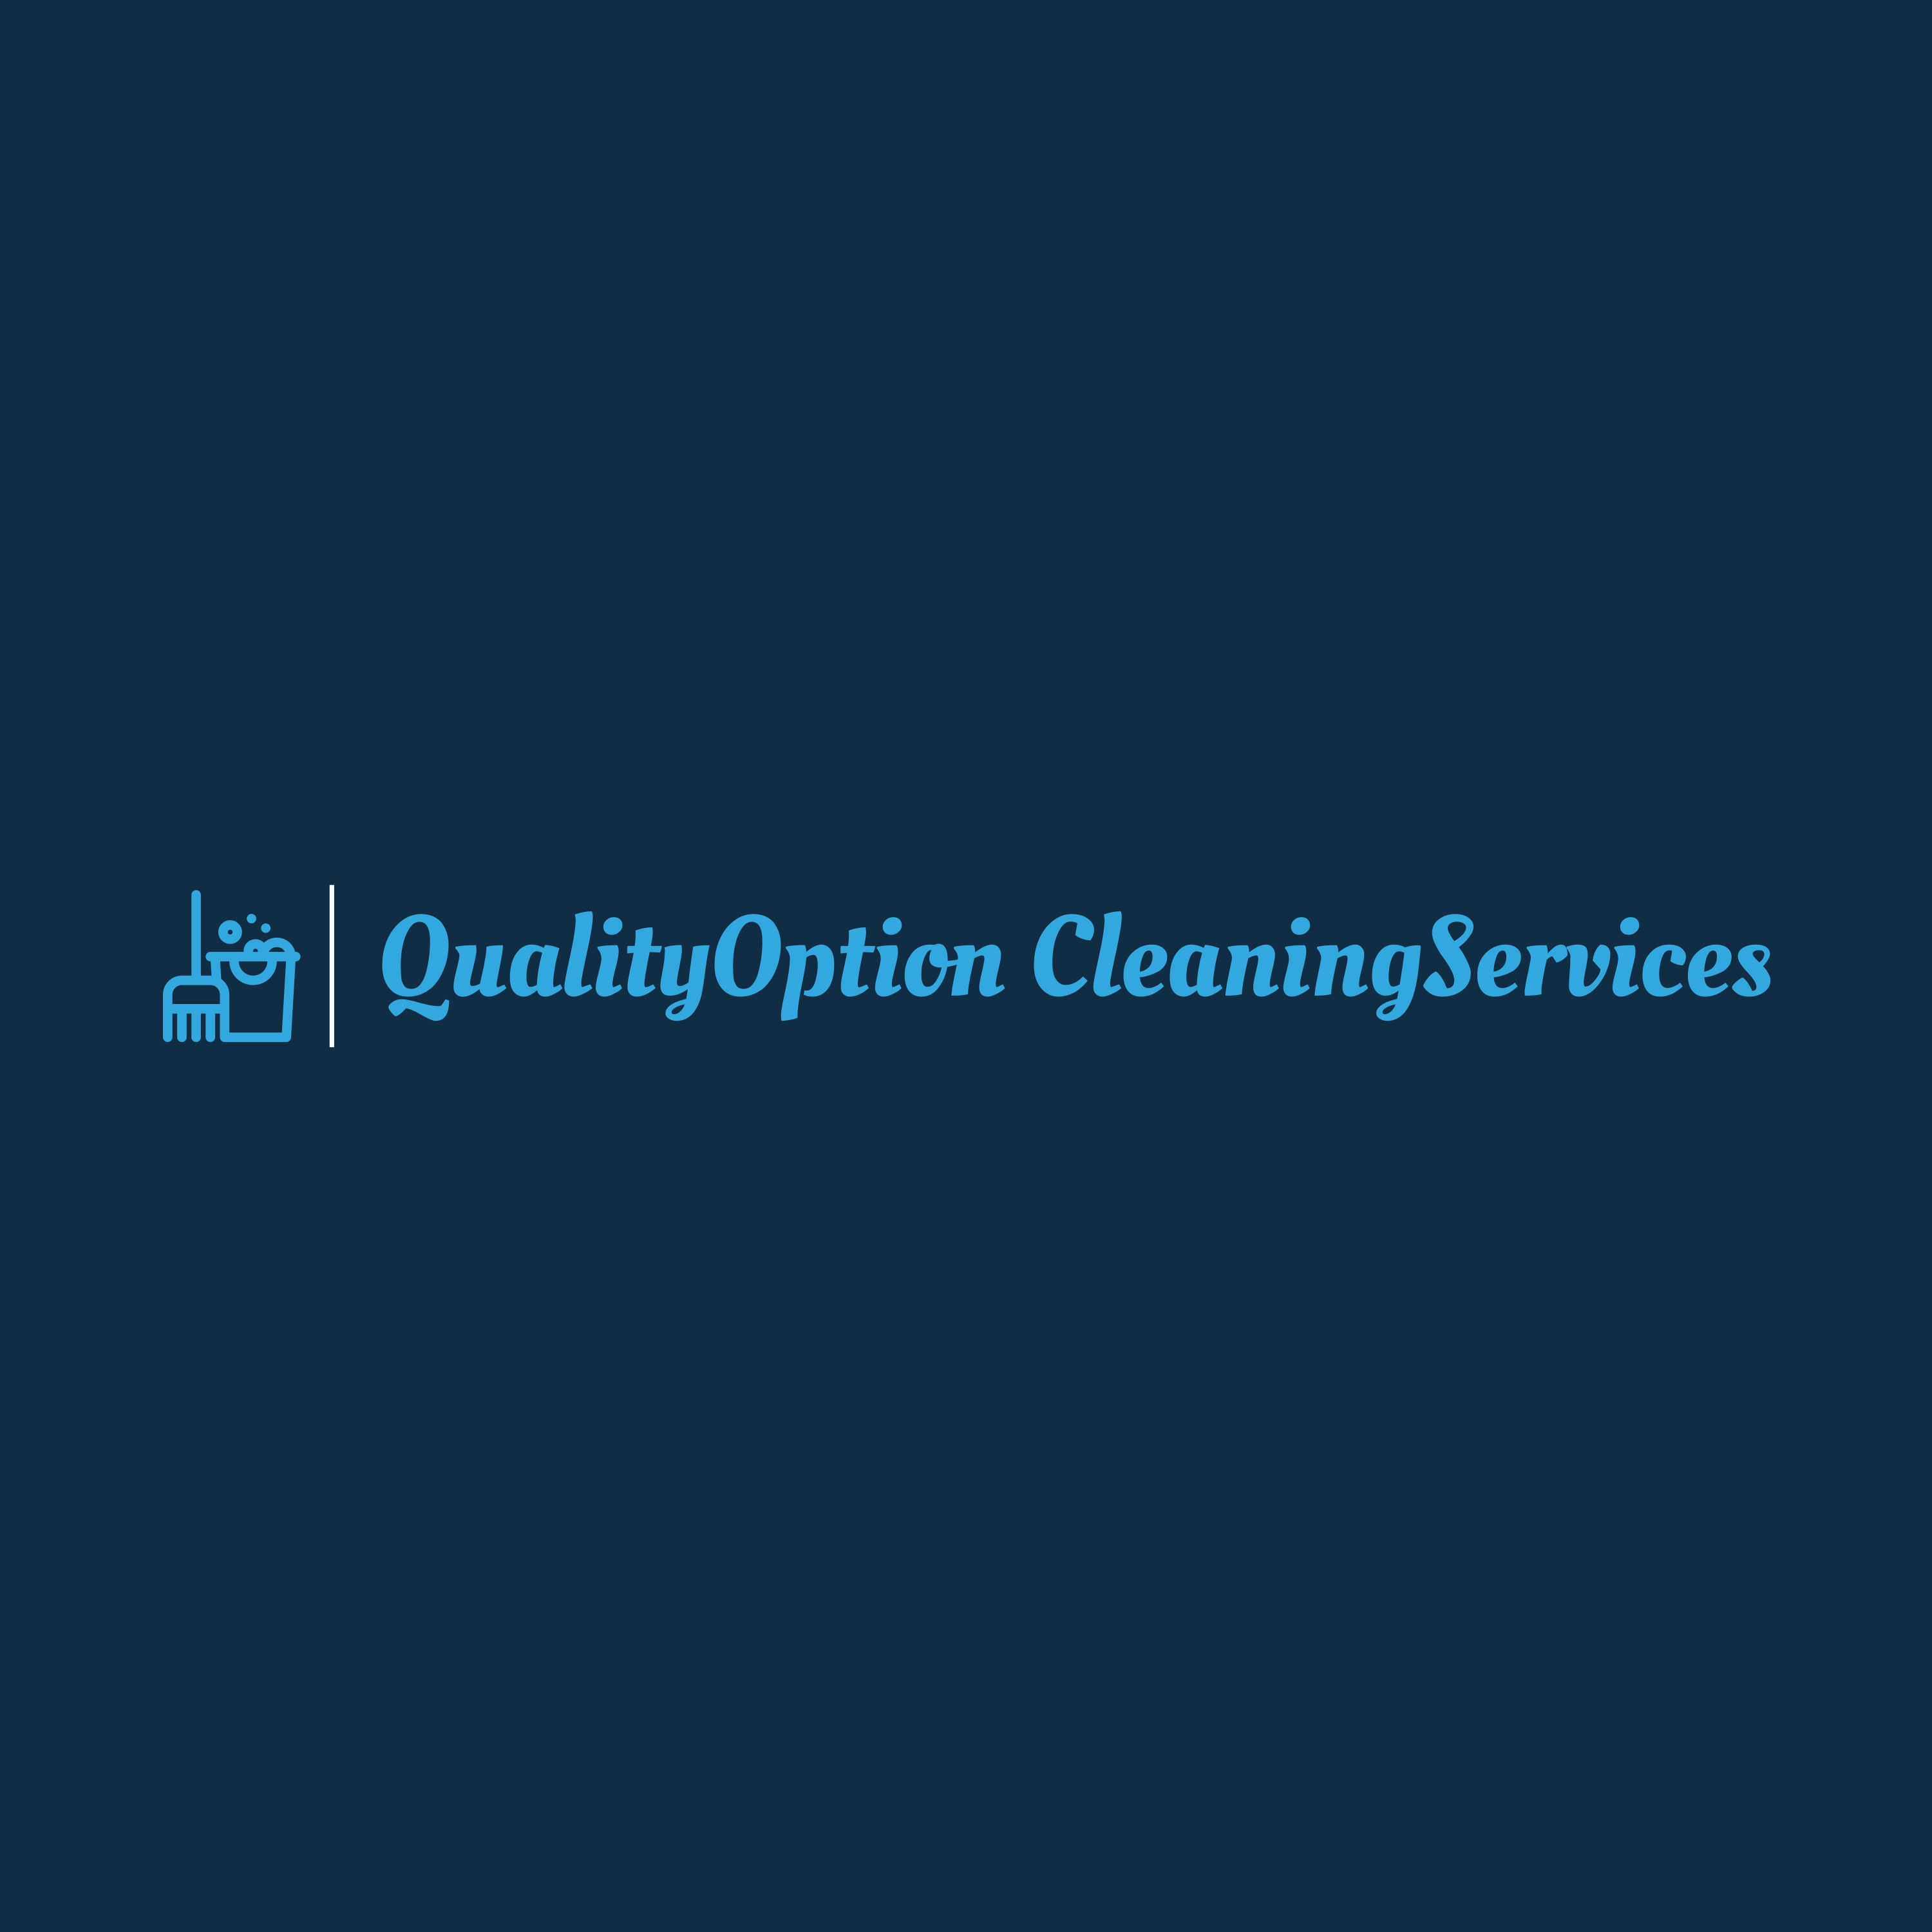 QualityOption CleaningServices